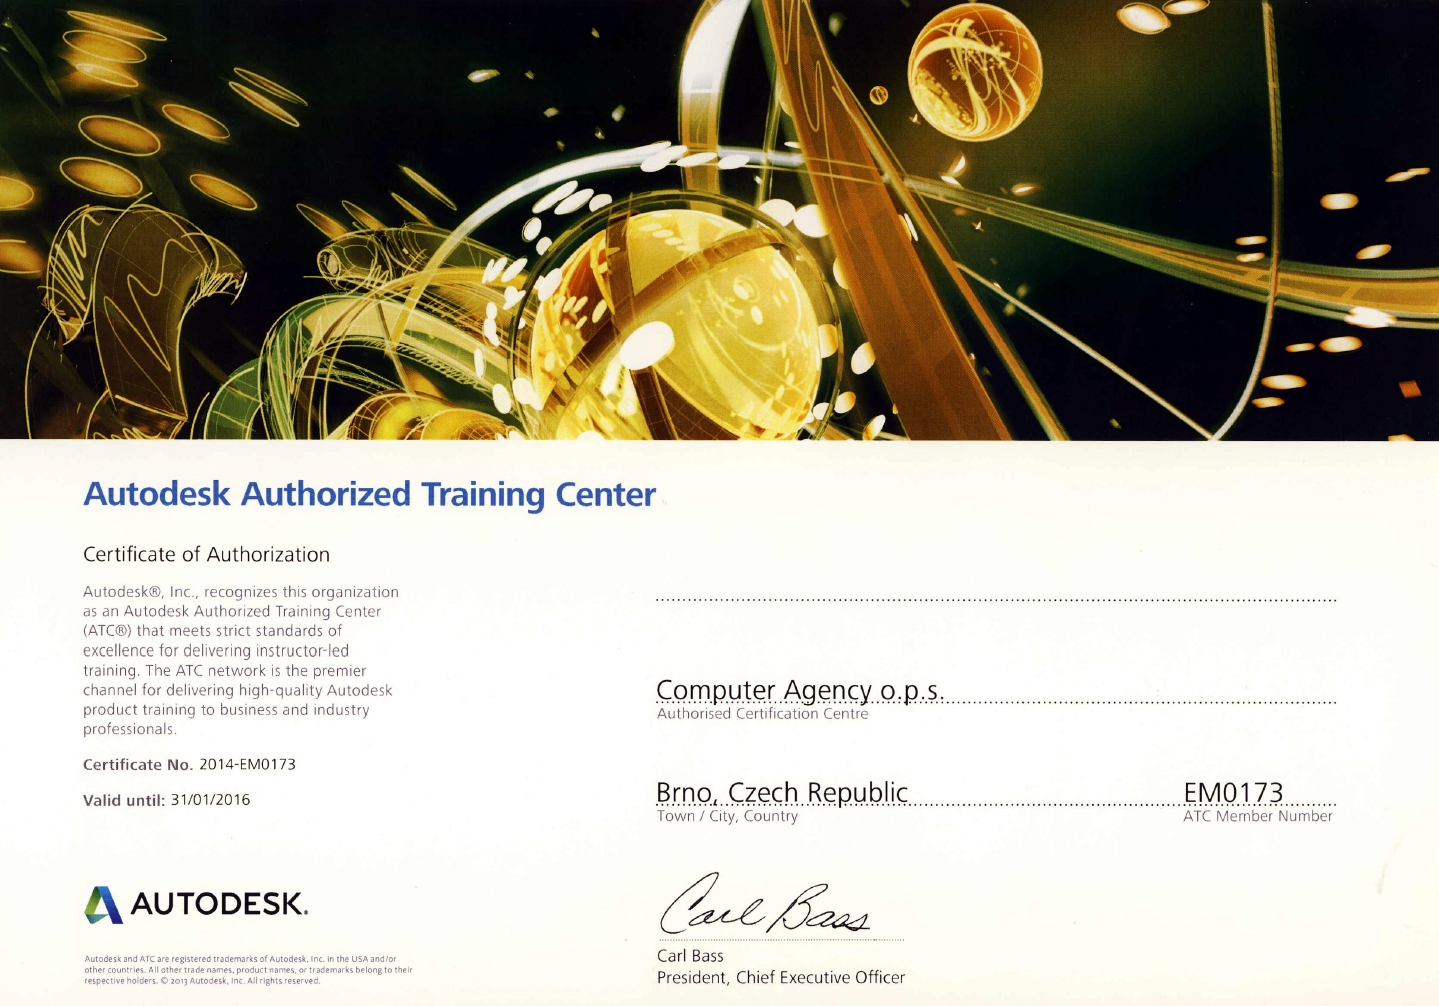 Autodesk Authorized Traingin Center - Brno, Praha